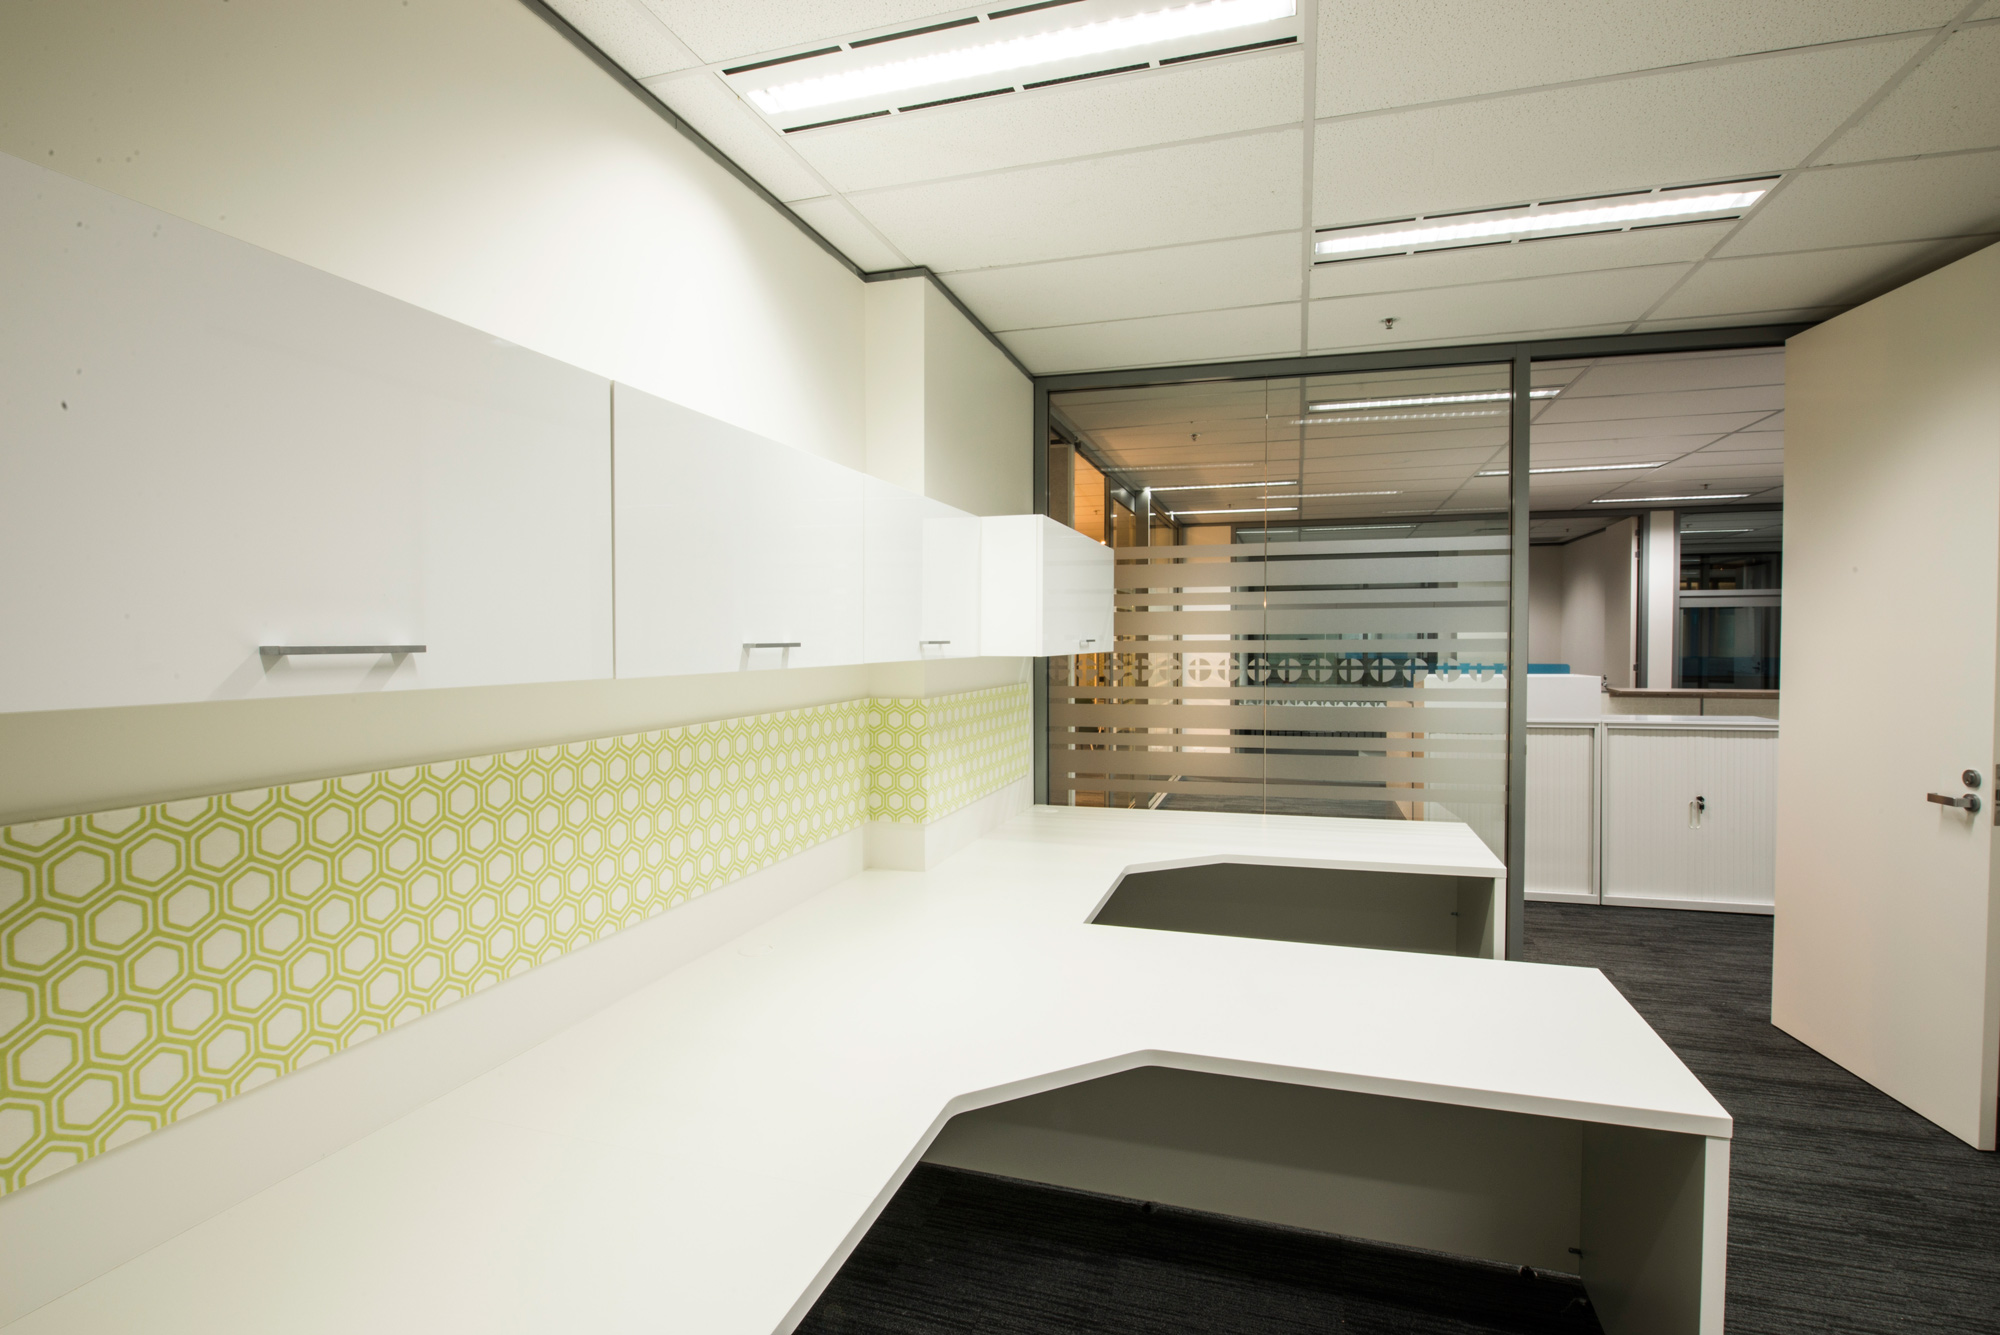 Commercial interior design melbourne for assess for Commercial interior design firms the list